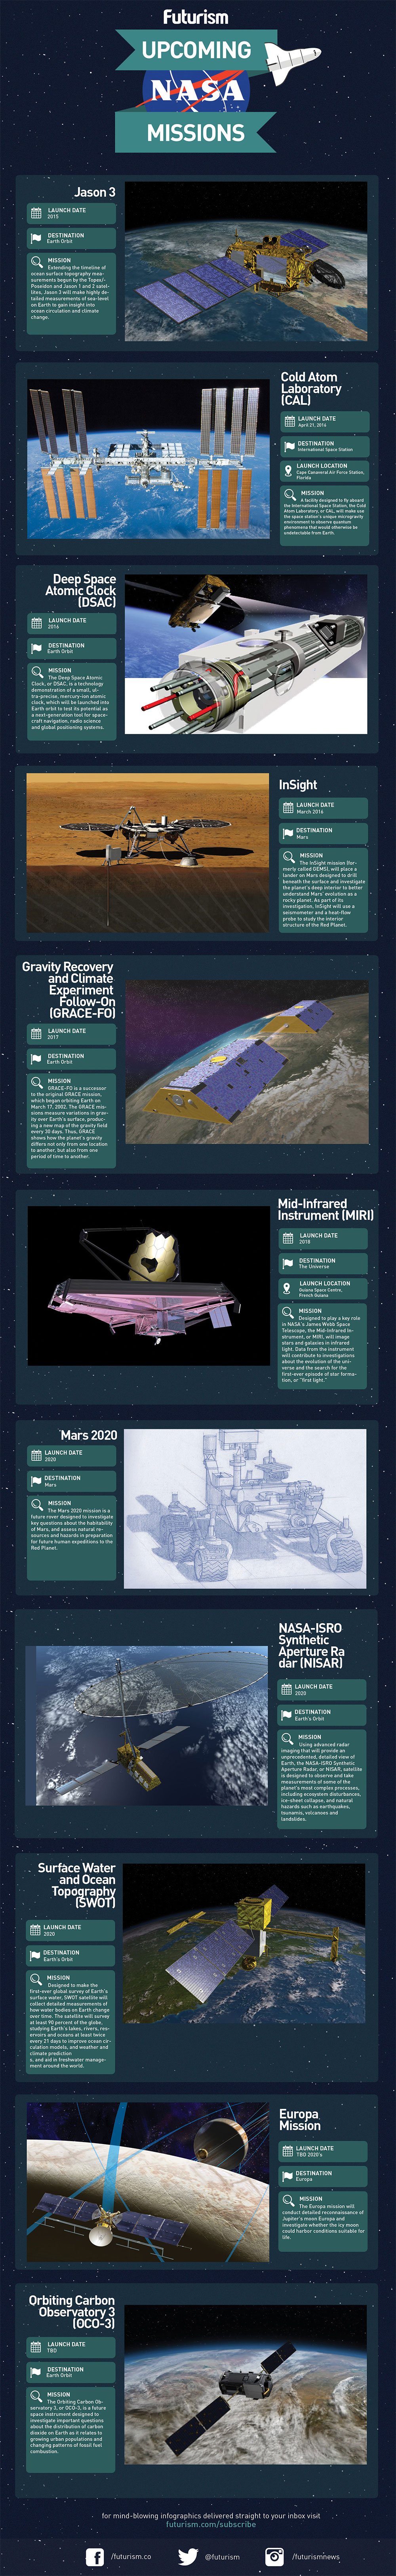 Infographic Upcoming NASA Missions